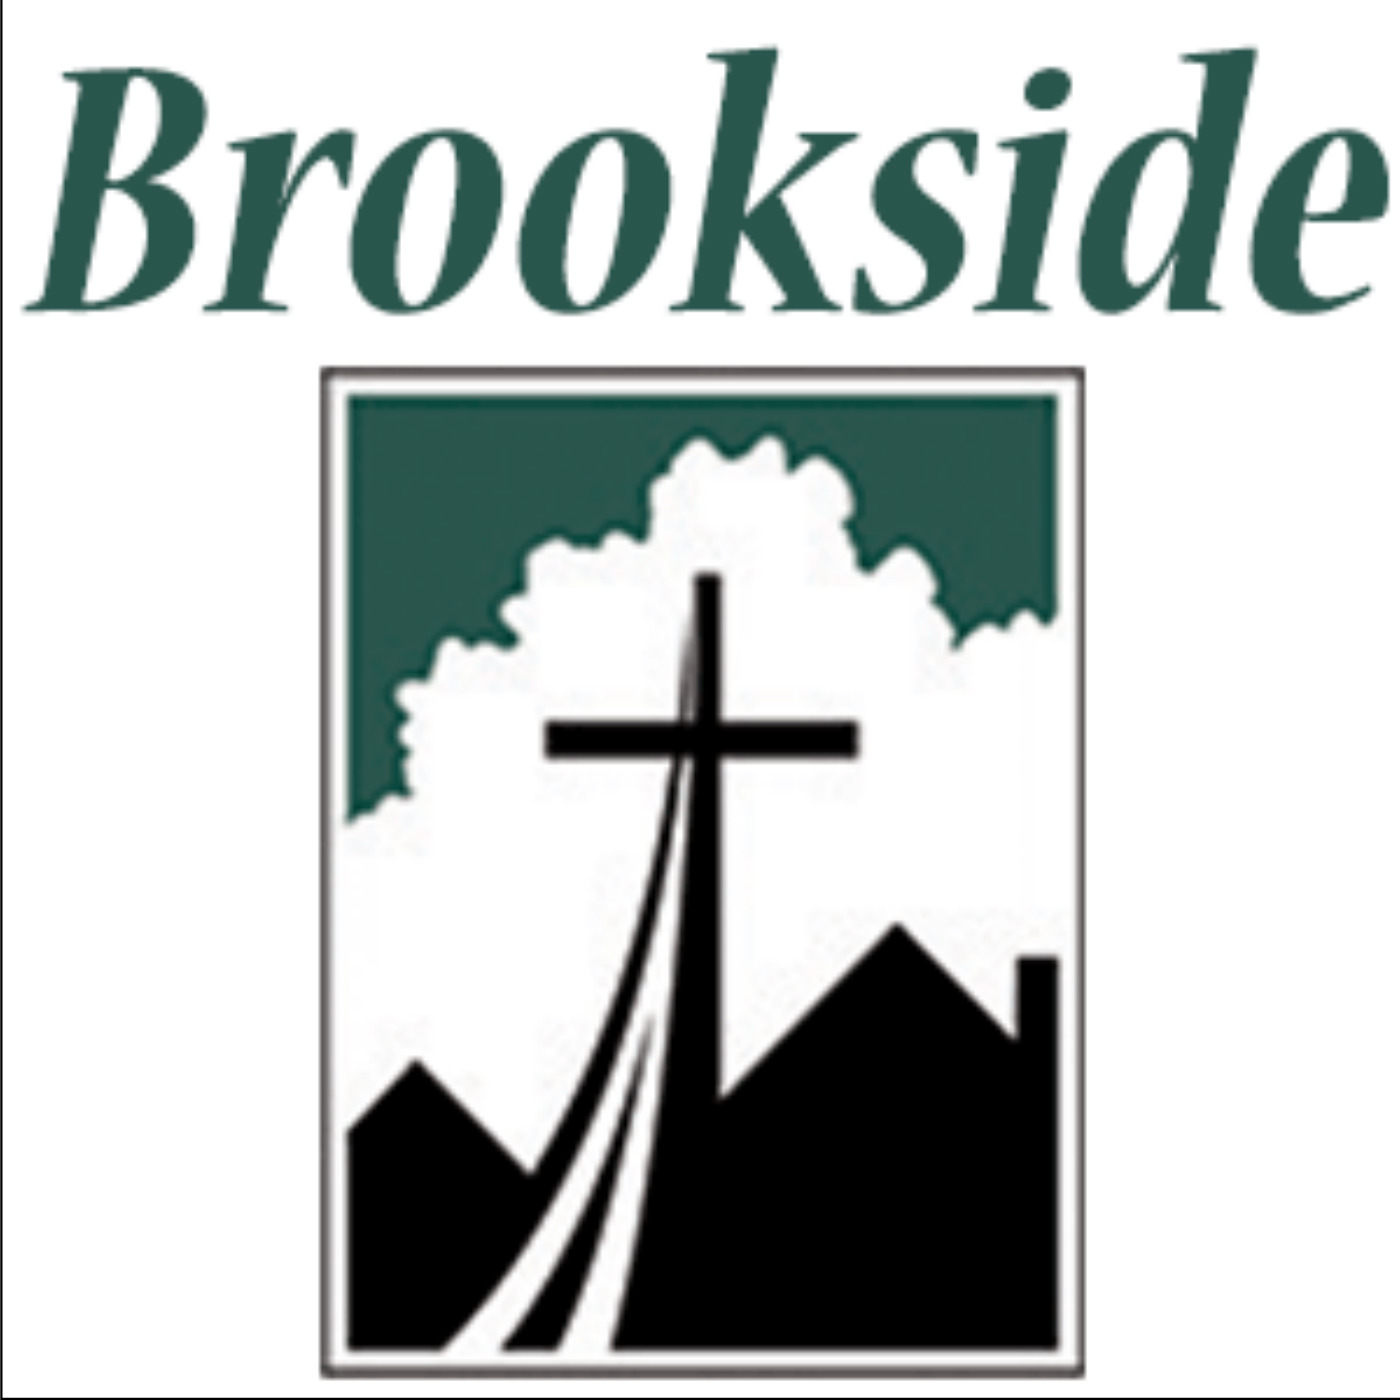 Sermons from Brookside CRC